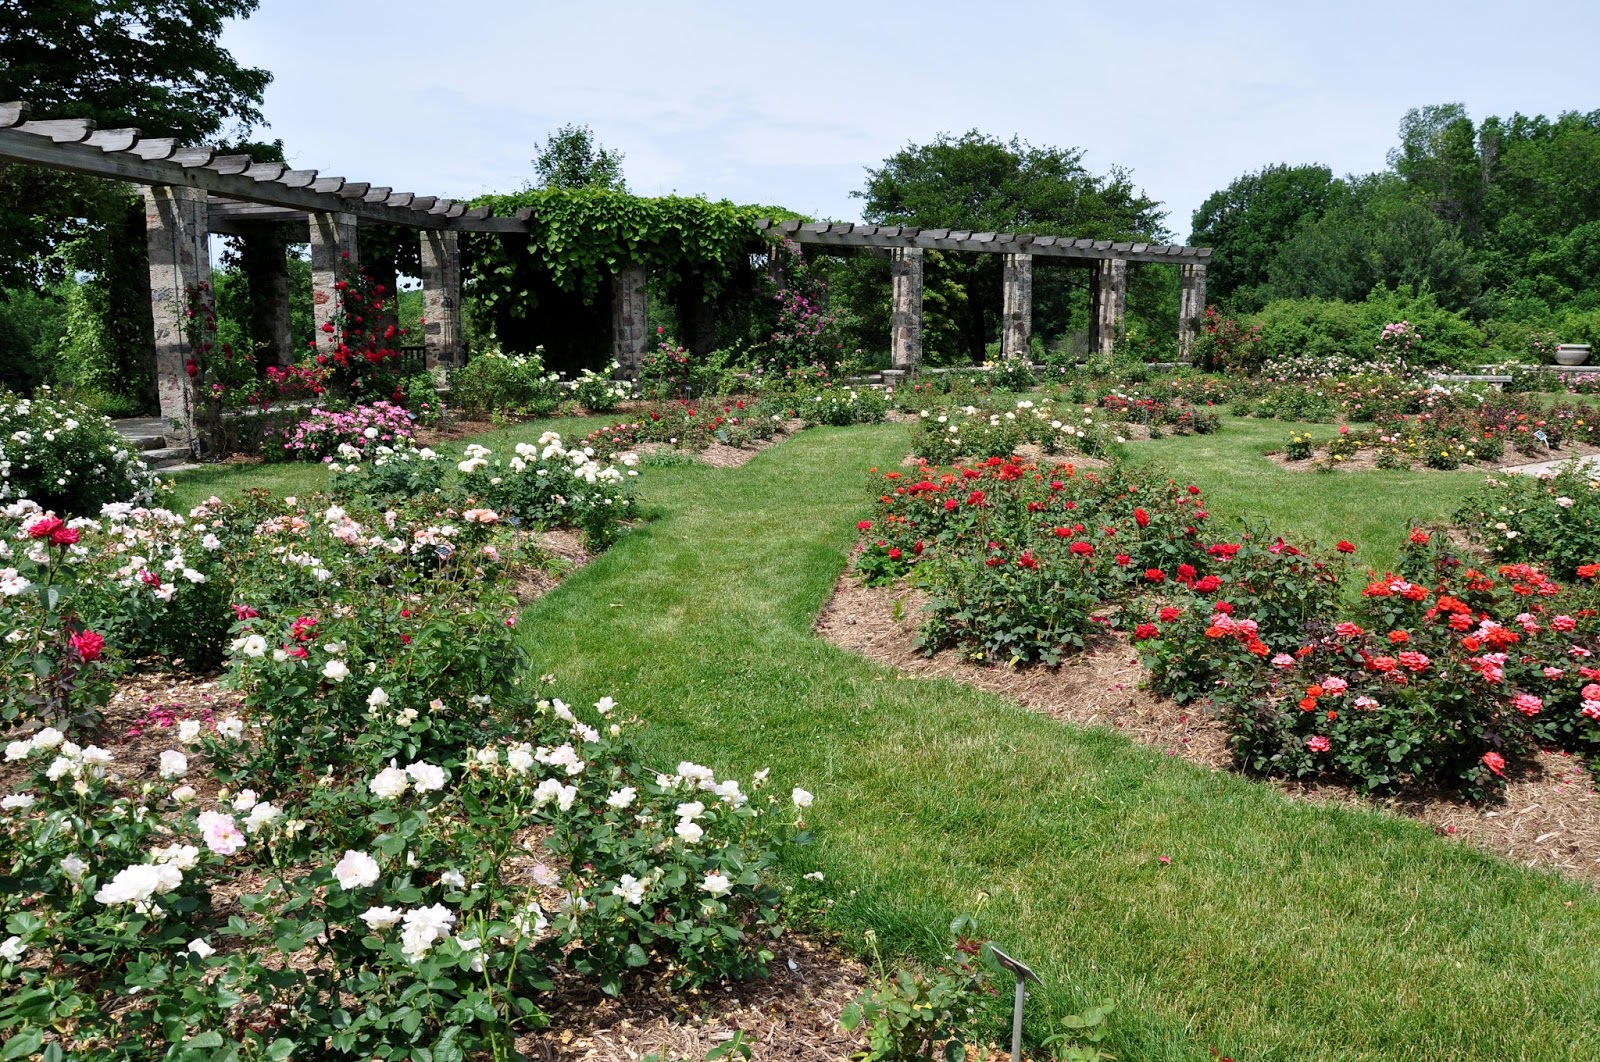 The Rose Garden At Boerner Botanical Garden